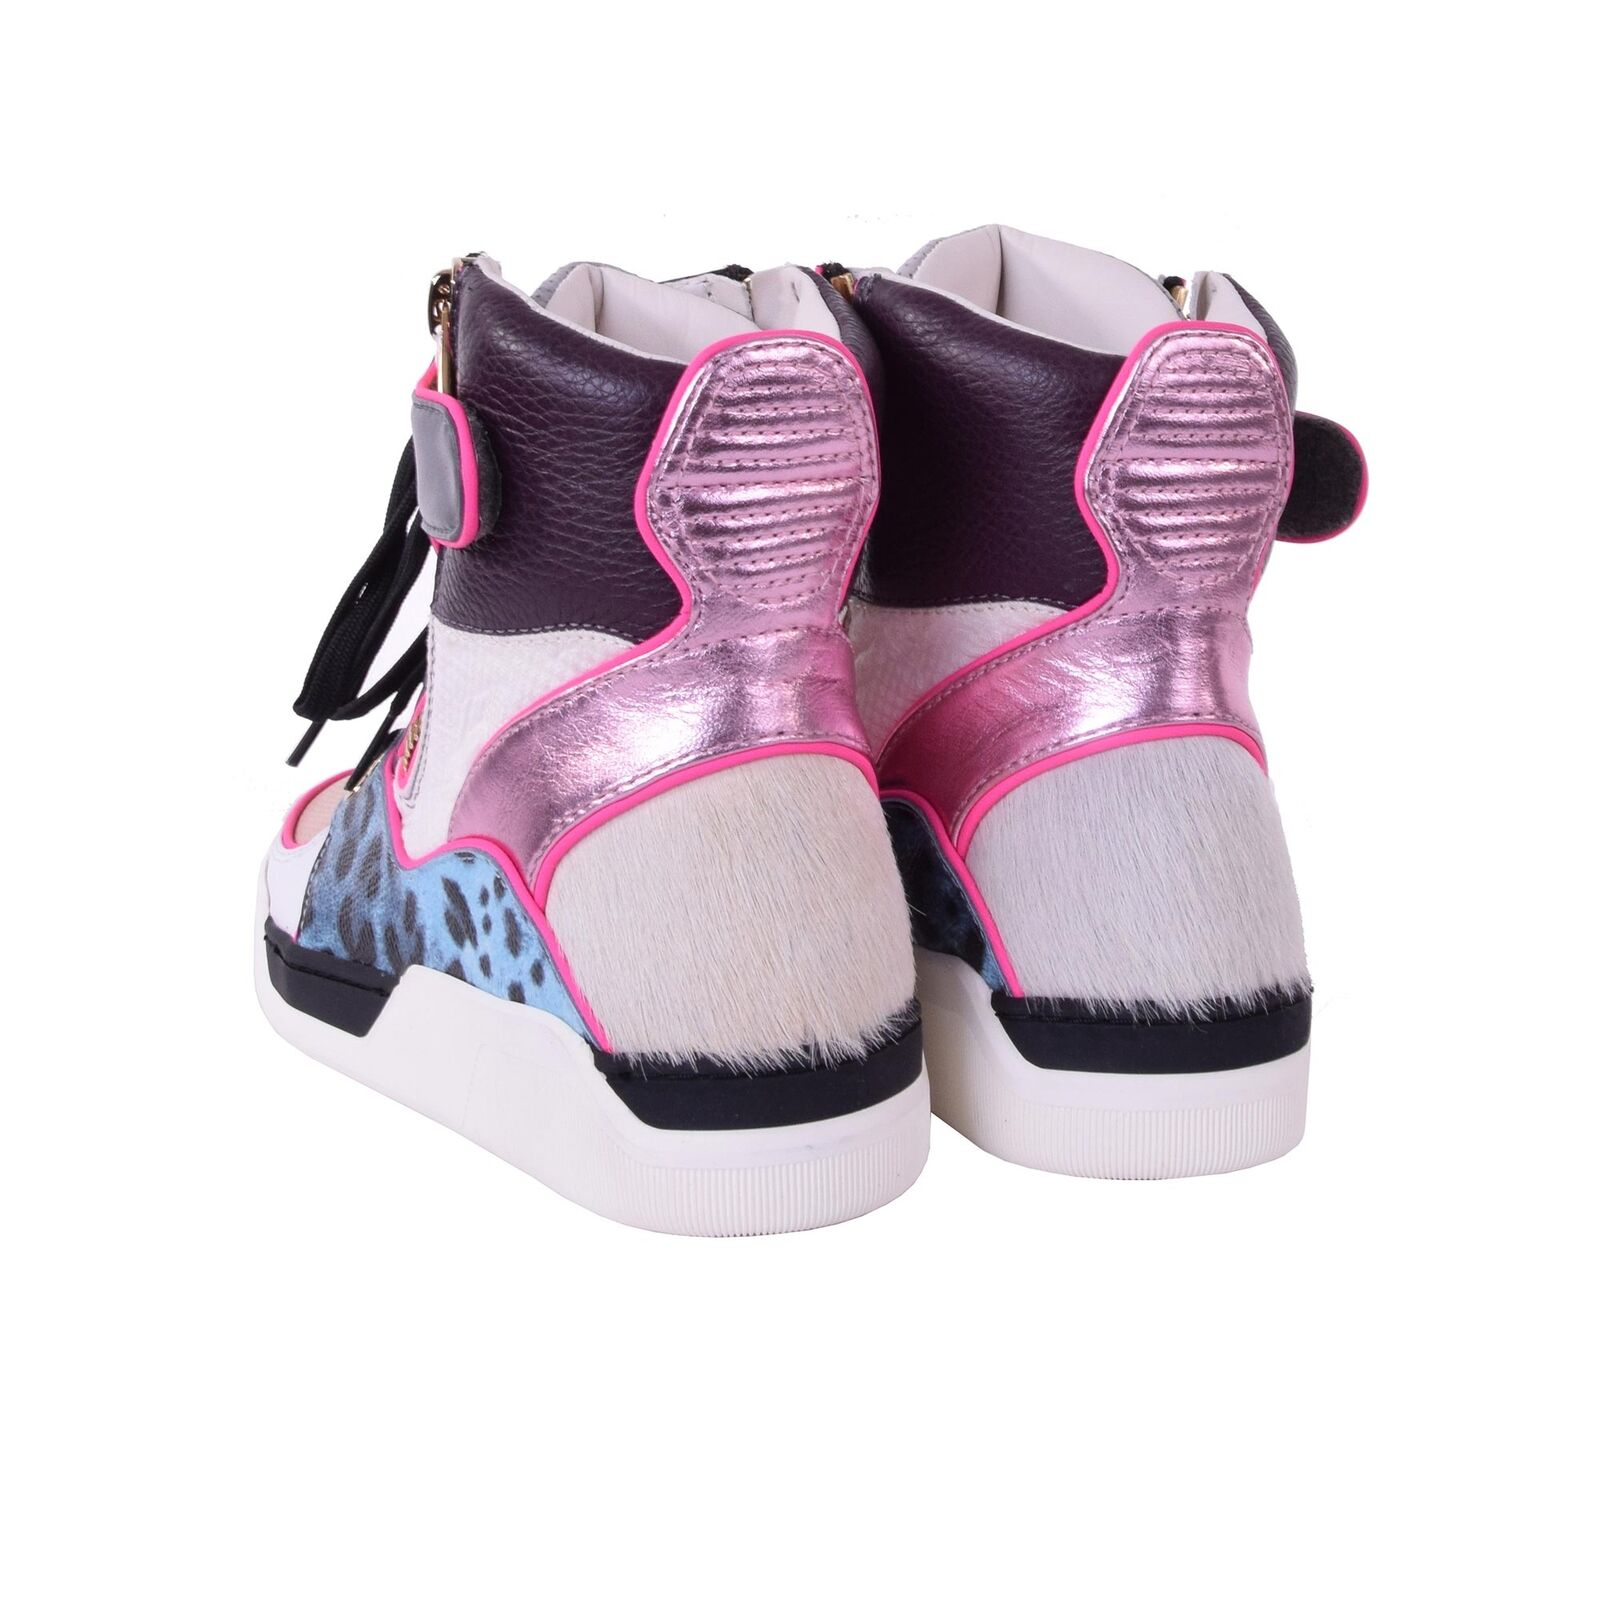 DOLCE & GABBANA Patchwork High-Top Fell Sneakers Sneaker aus Leder Fell High-Top Brokat 05871 bcf353